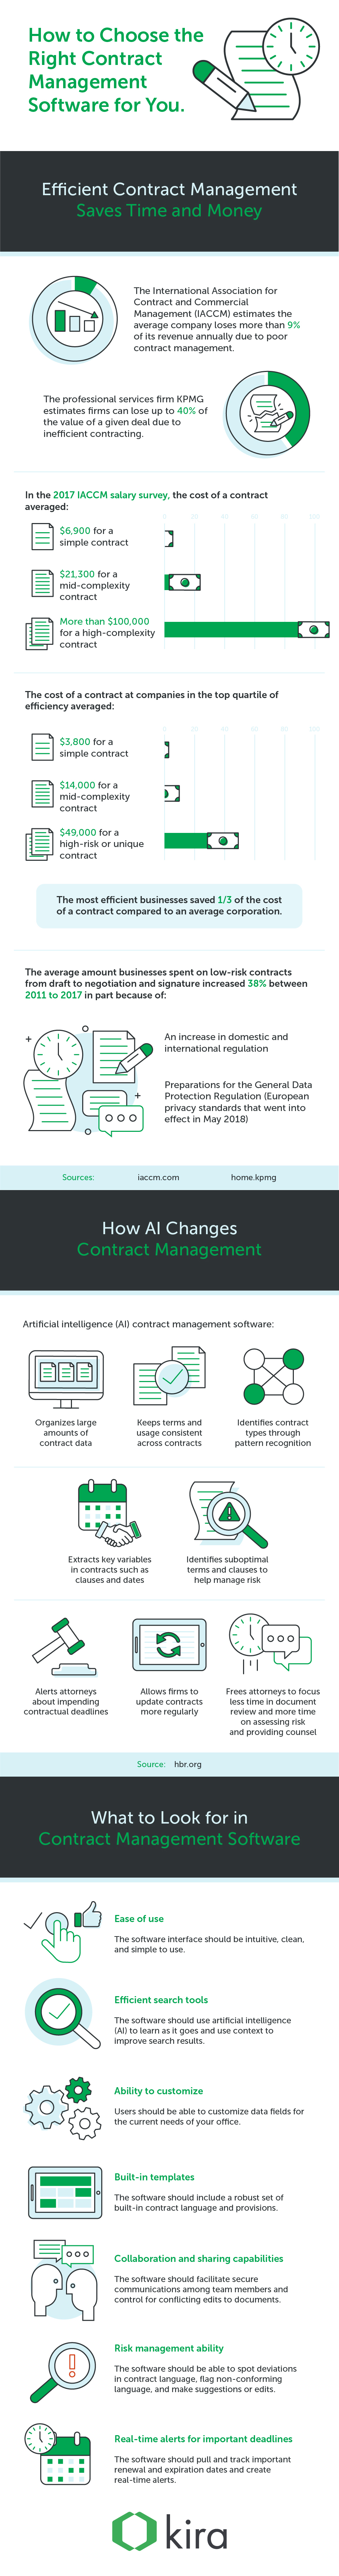 how-to-choose-the-right-contract-management-software-for-you-embed